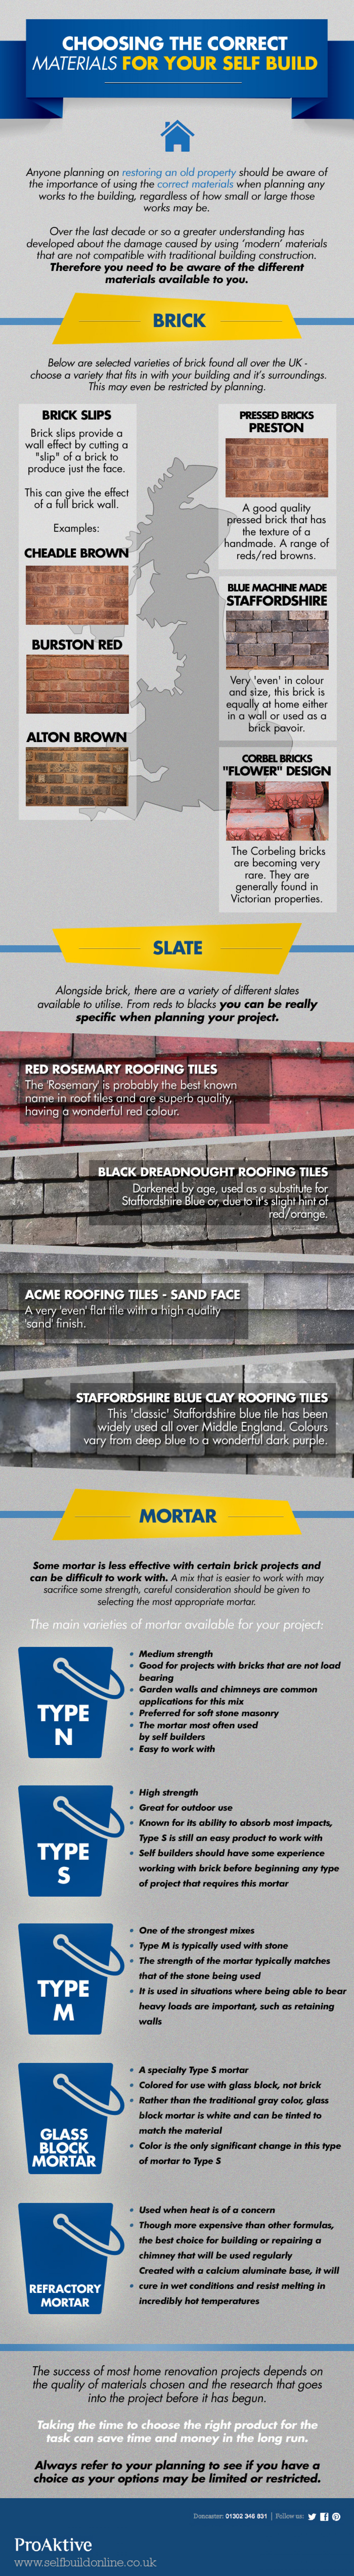 CHOOSING THE CORRECT MATERIALS FOR YOUR SELF BUILD Infographic